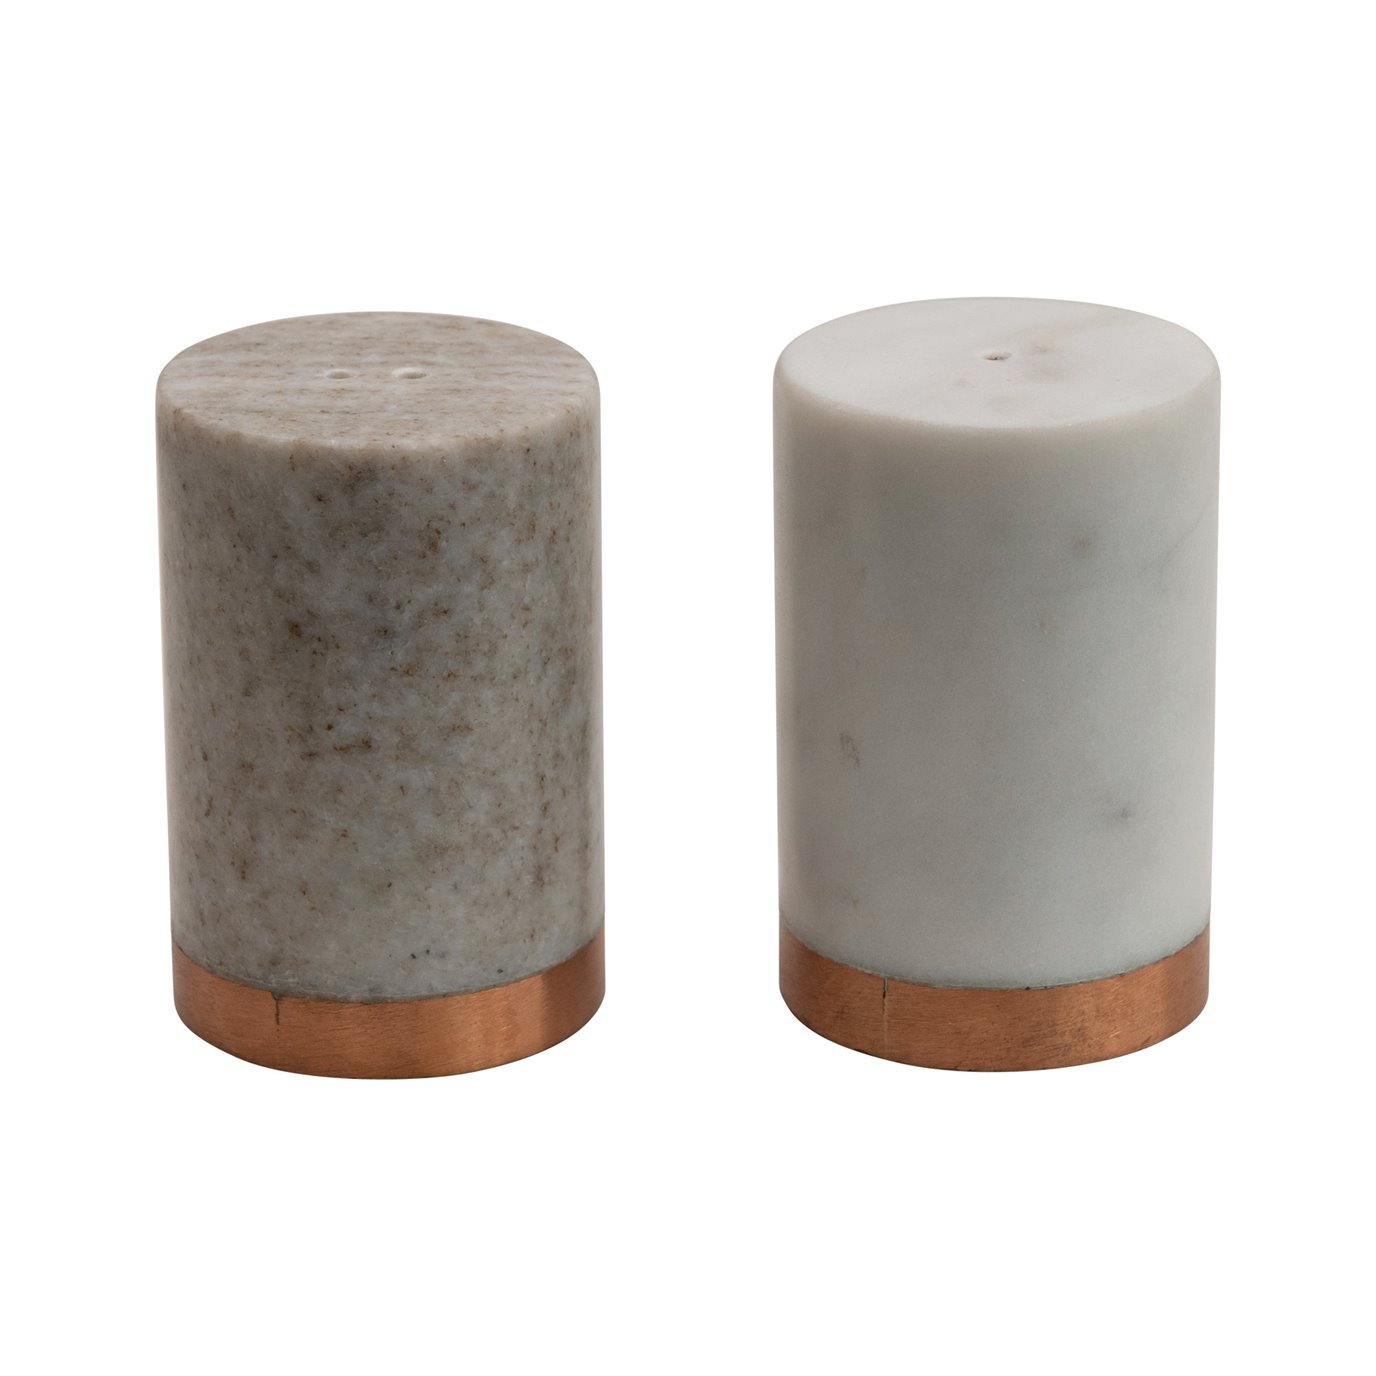 Marble Salt and Peper Shakers (Set of 2)